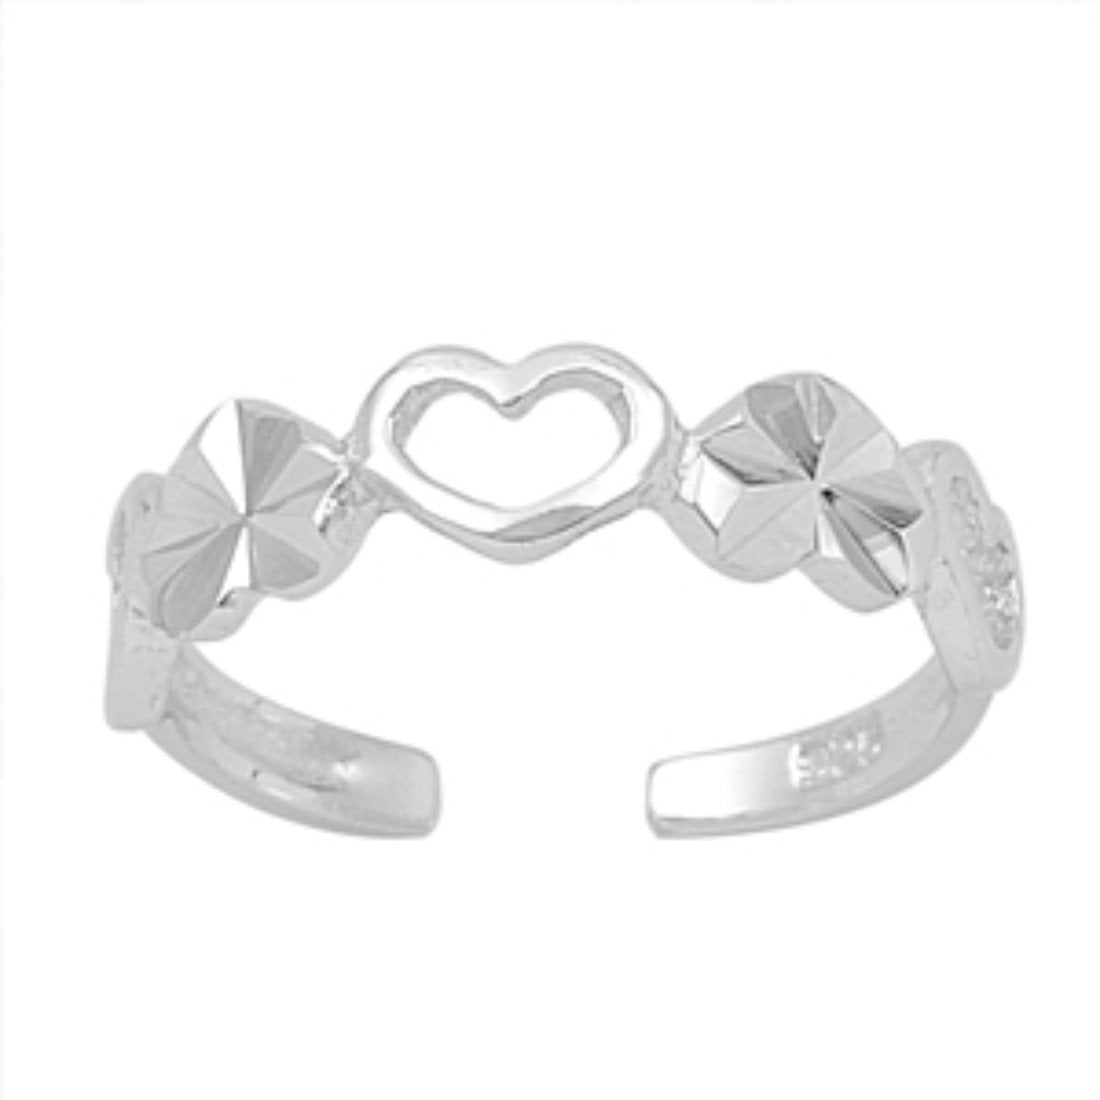 Heart Toe Ring Adjustable Band 925 Sterling Silver (4mm)